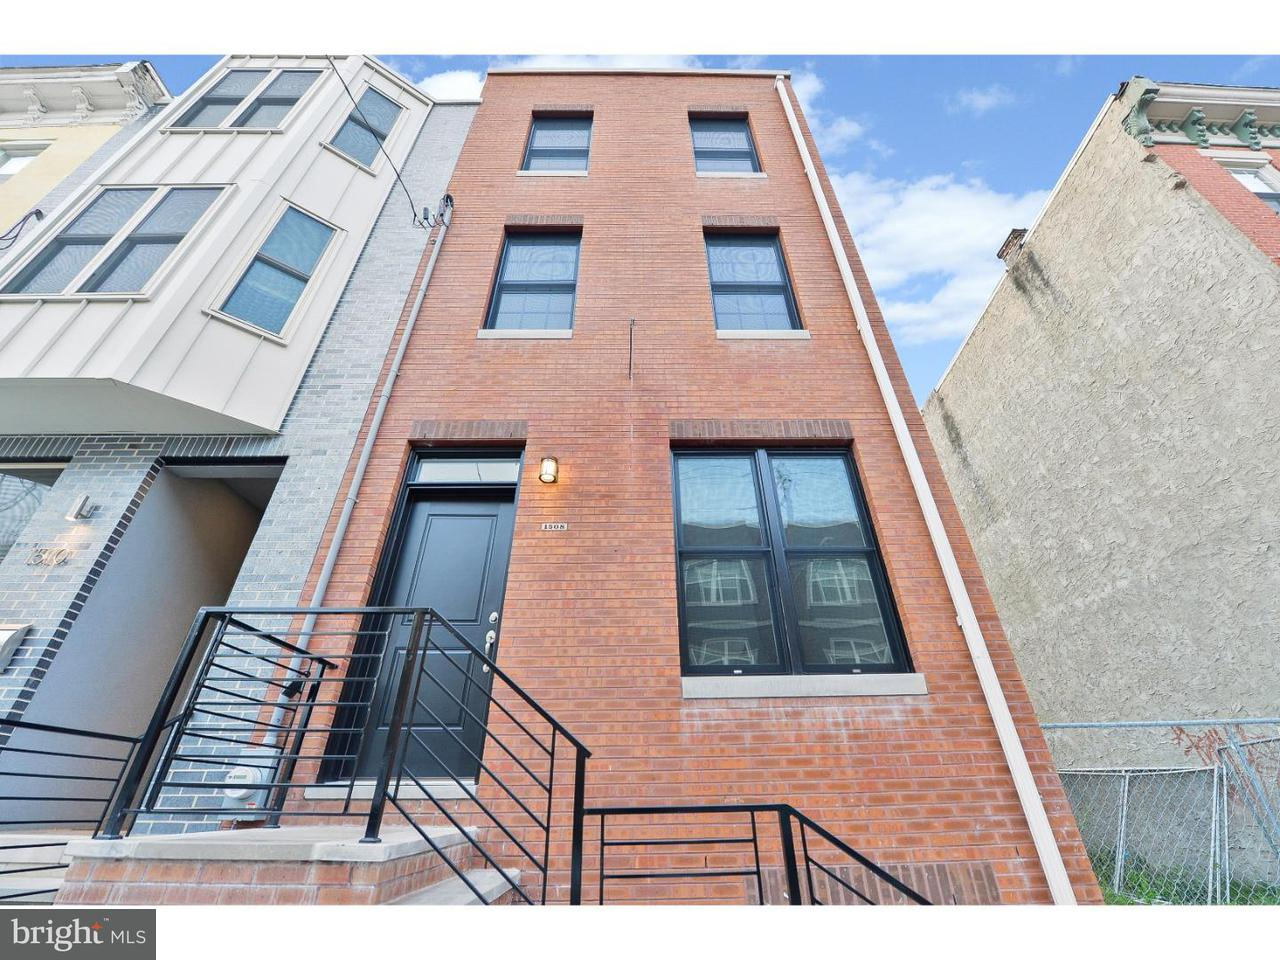 1508 S 5TH Philadelphia, PA 19147